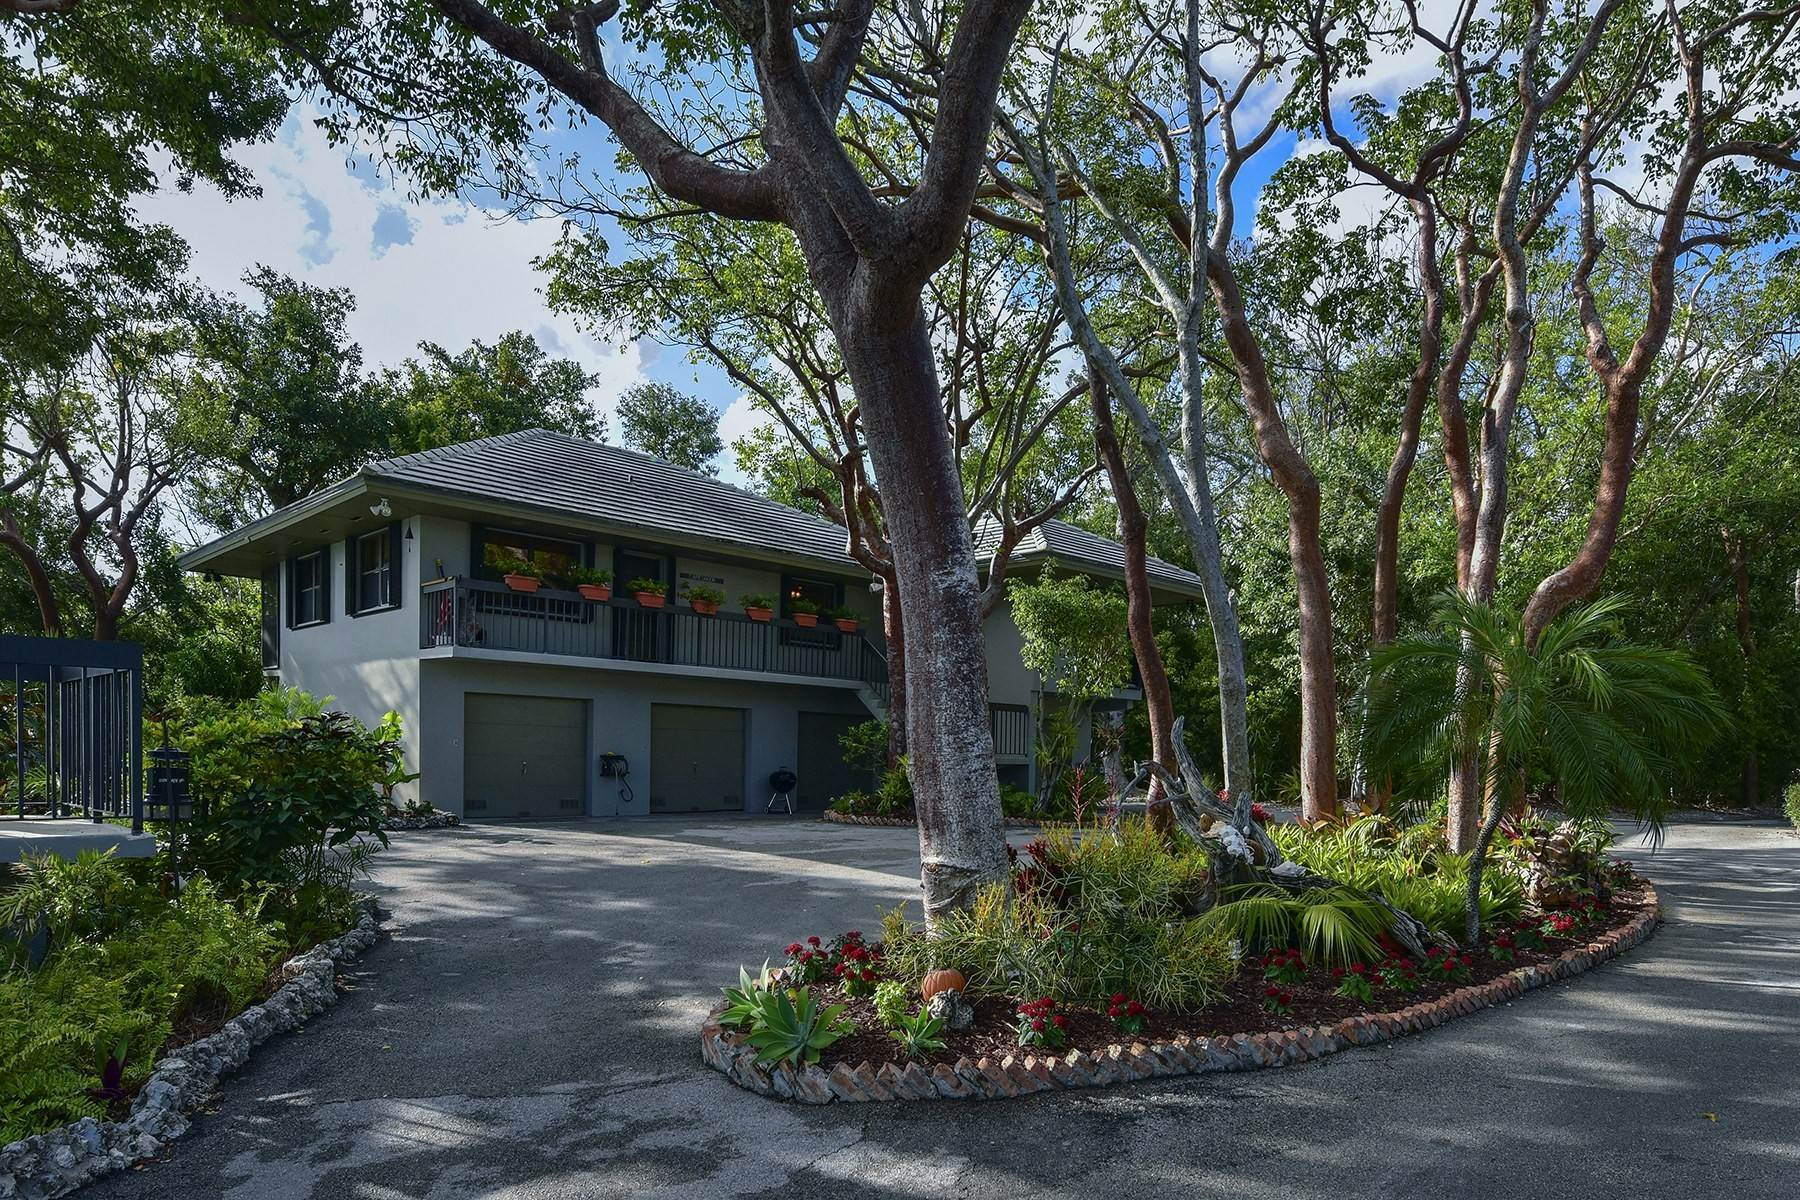 21. Property for Sale at Pumpkin Key - Private Island, Key Largo, FL Pumpkin Key - Private Island Key Largo, Florida 33037 United States